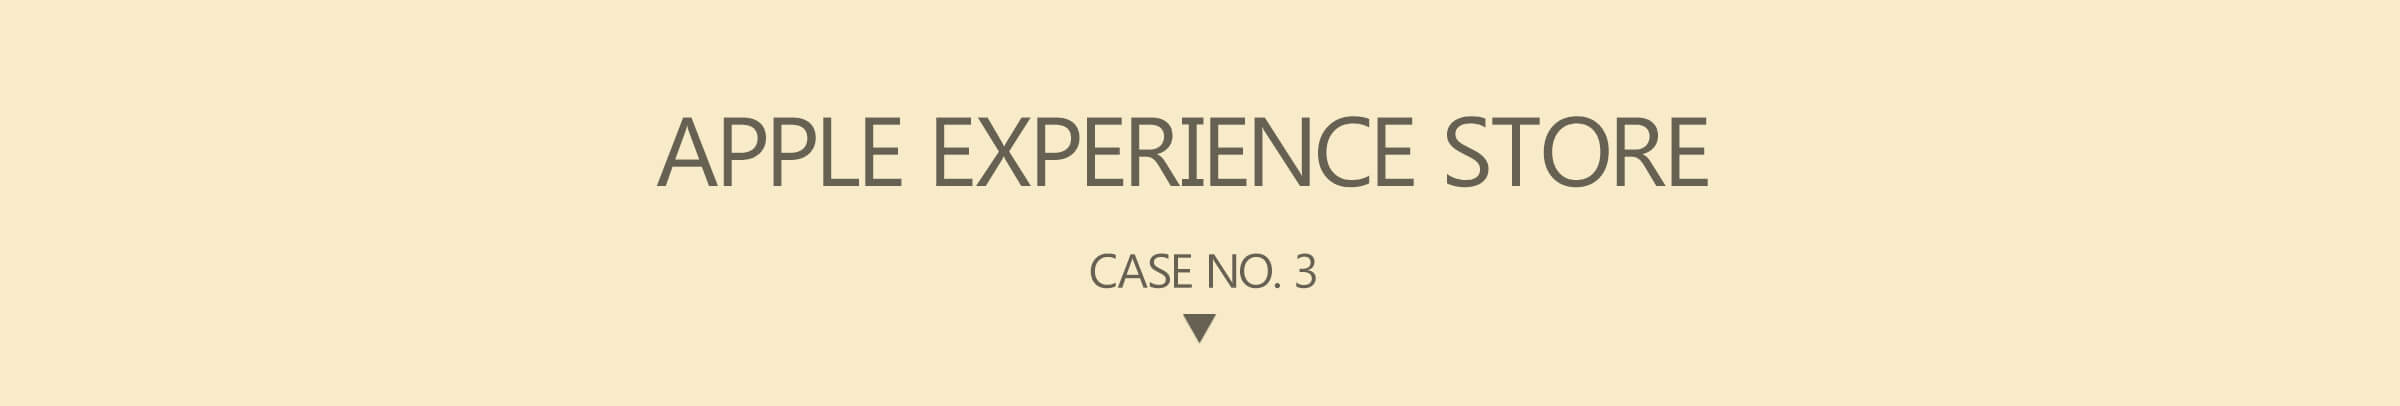 Apple Experience Store Case Three